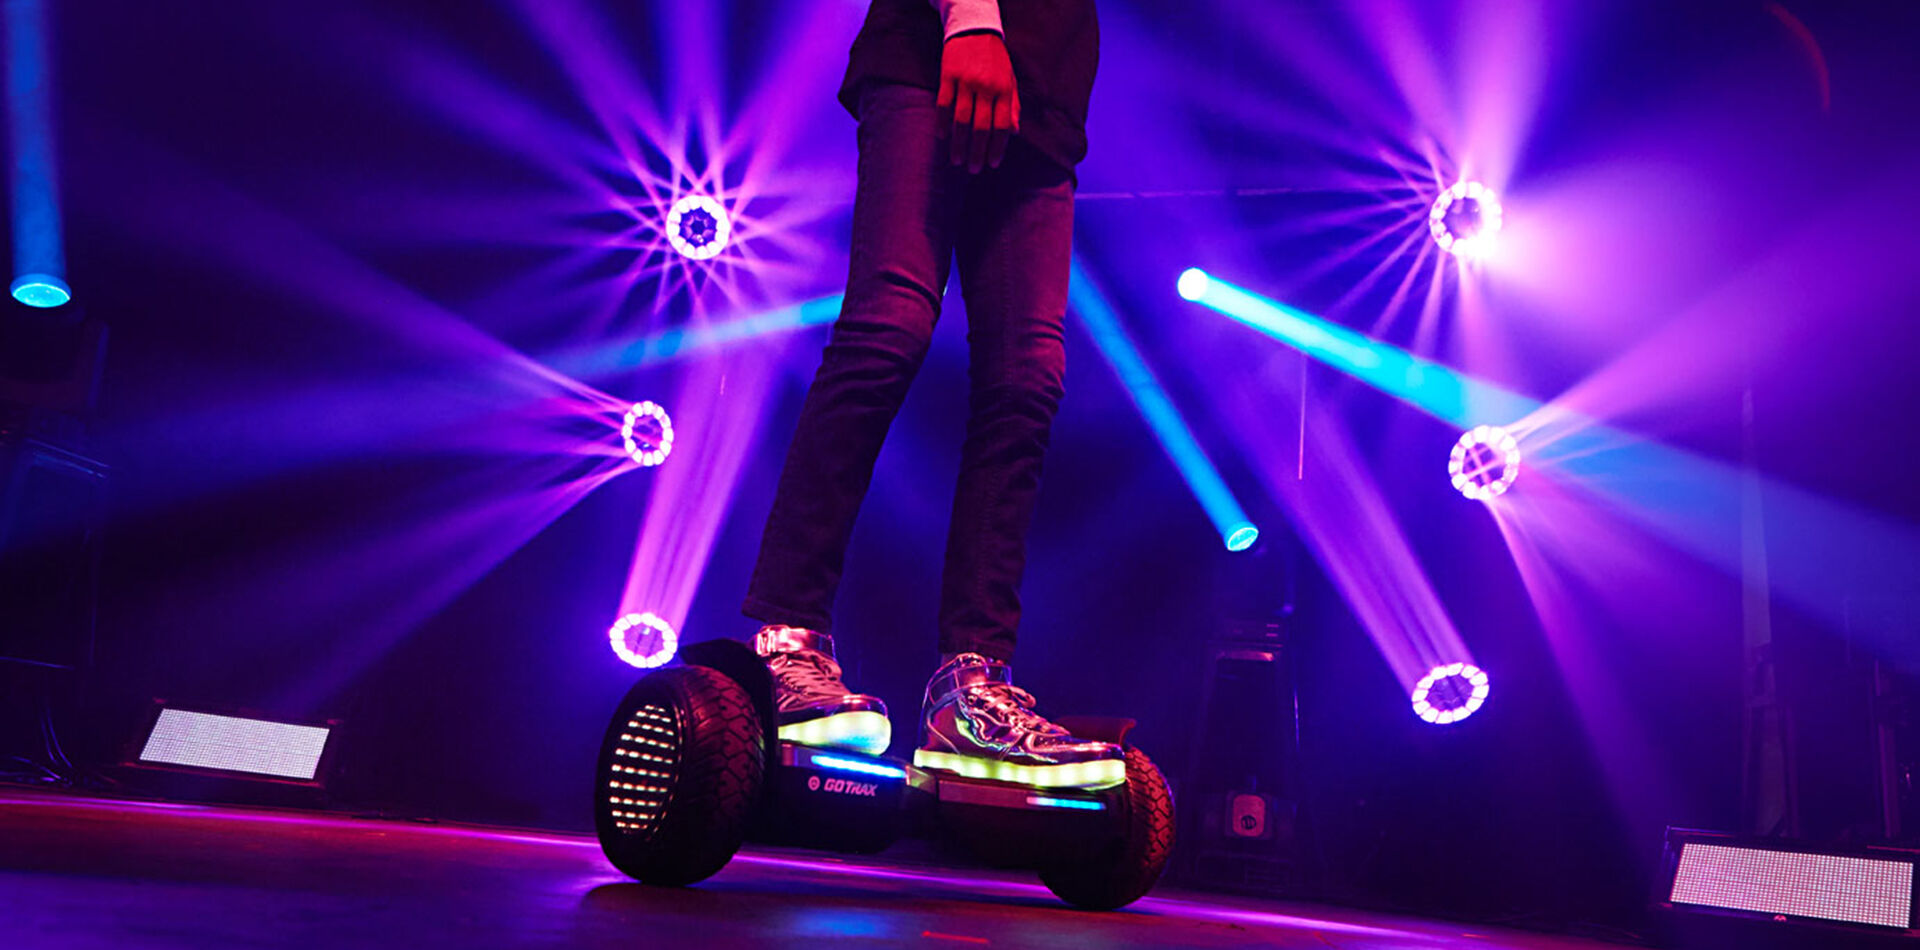 GOTRAX Hoverboards